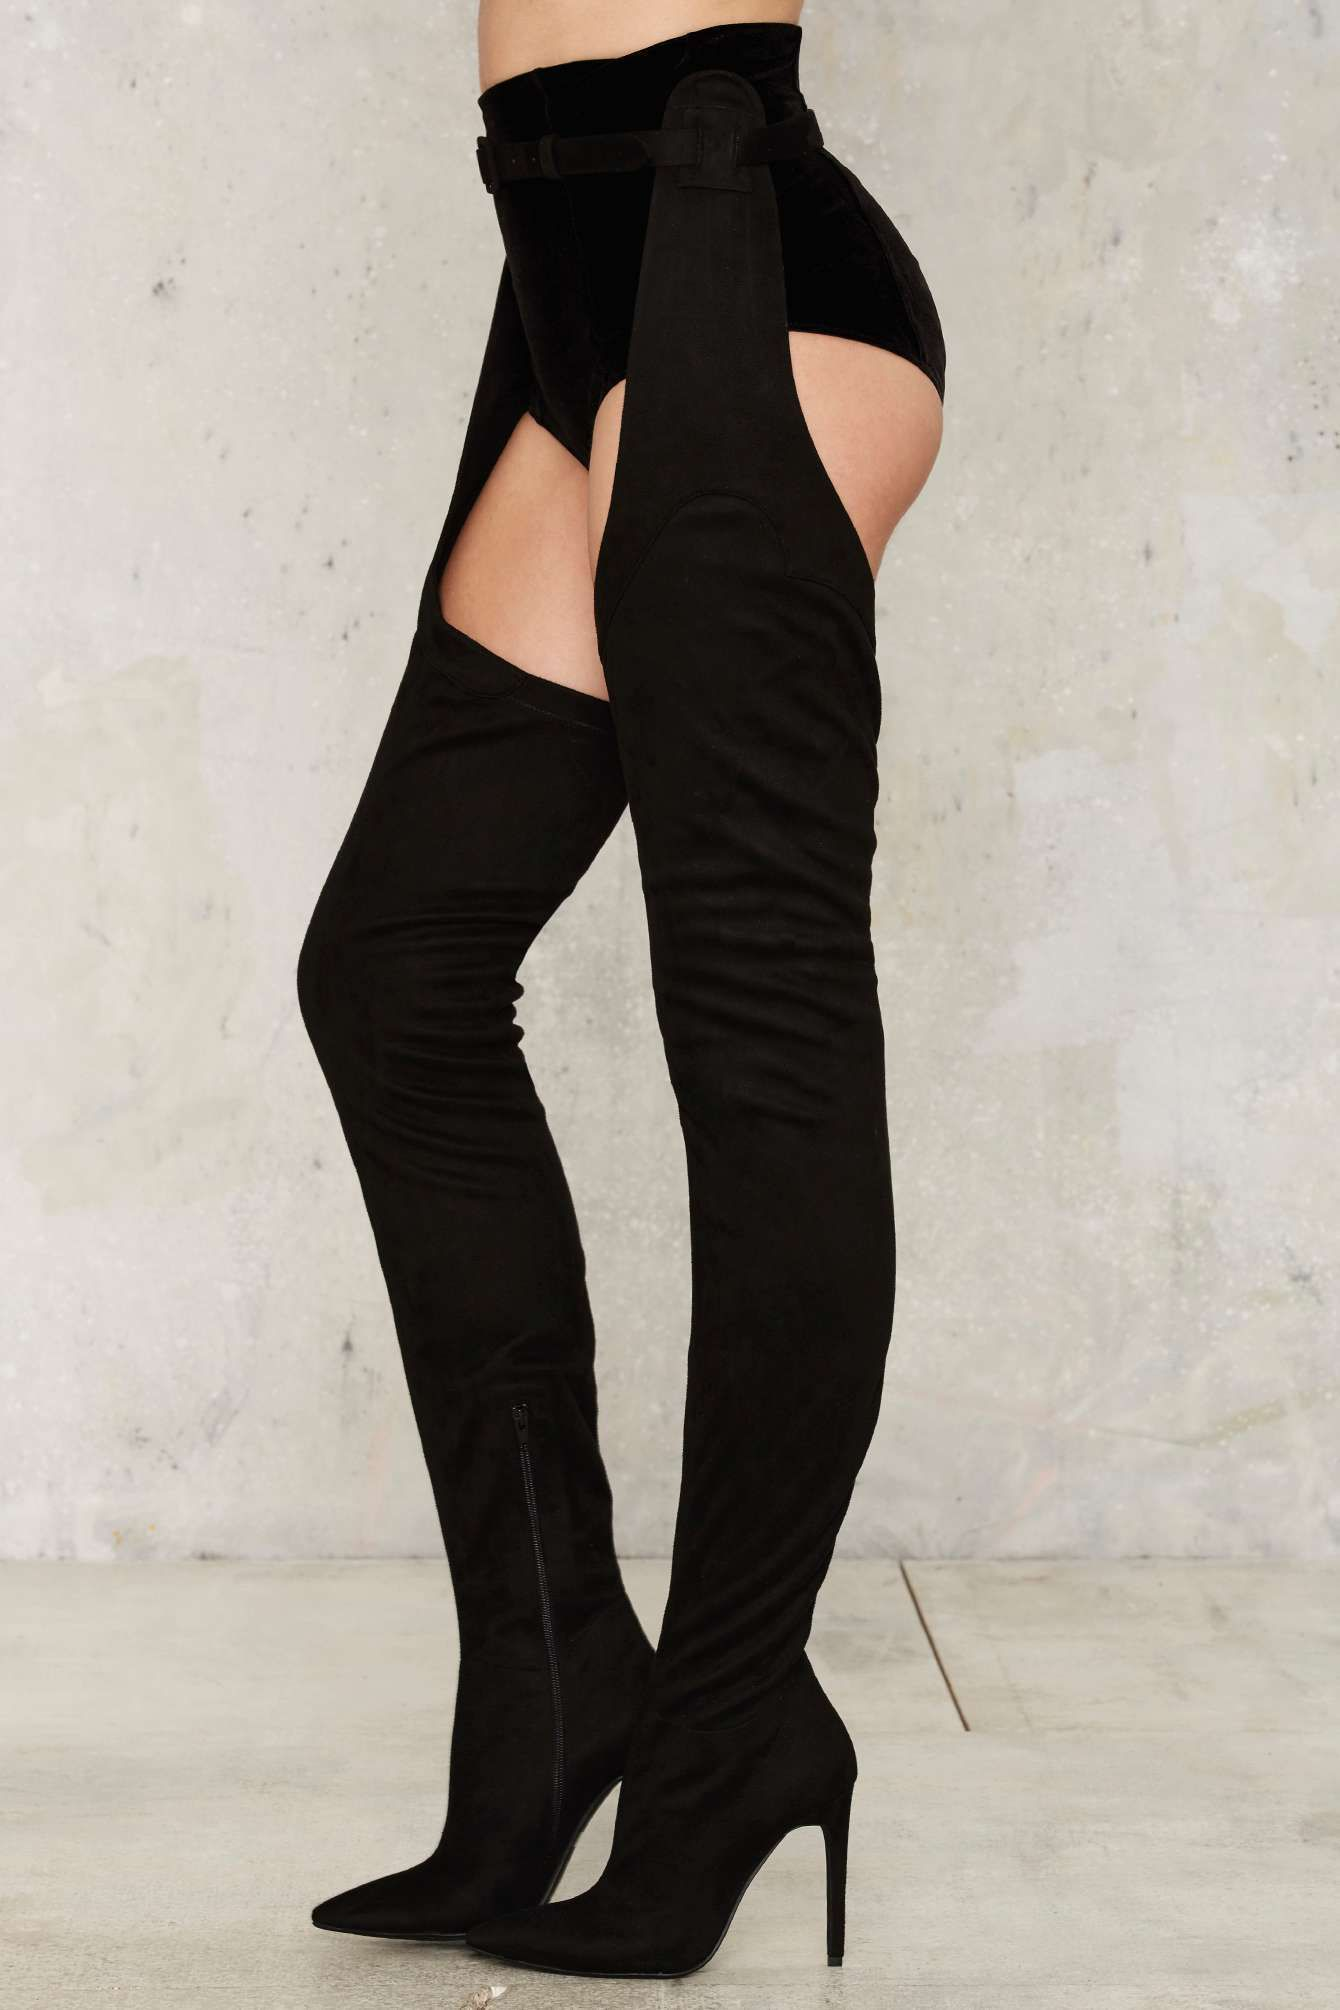 63313c5c06a3 Jeffrey Campbell Maven Thigh-High Boot - Nasty Gal | Outfits in 2019 ...